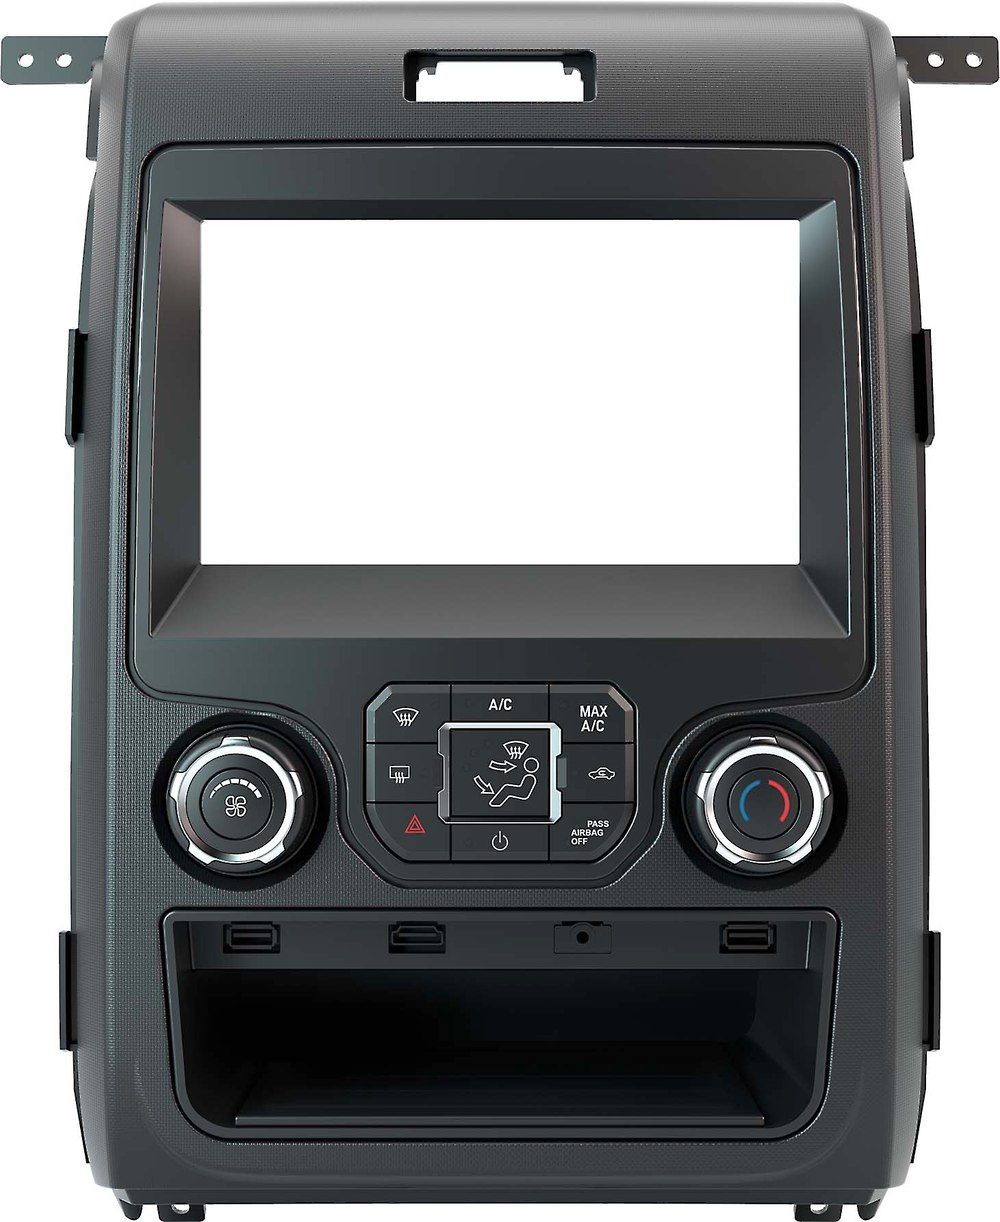 x794K150 F idatalink k150 dash kit install a new car stereo in select 2013 14 Dash Kit for F150 at gsmx.co